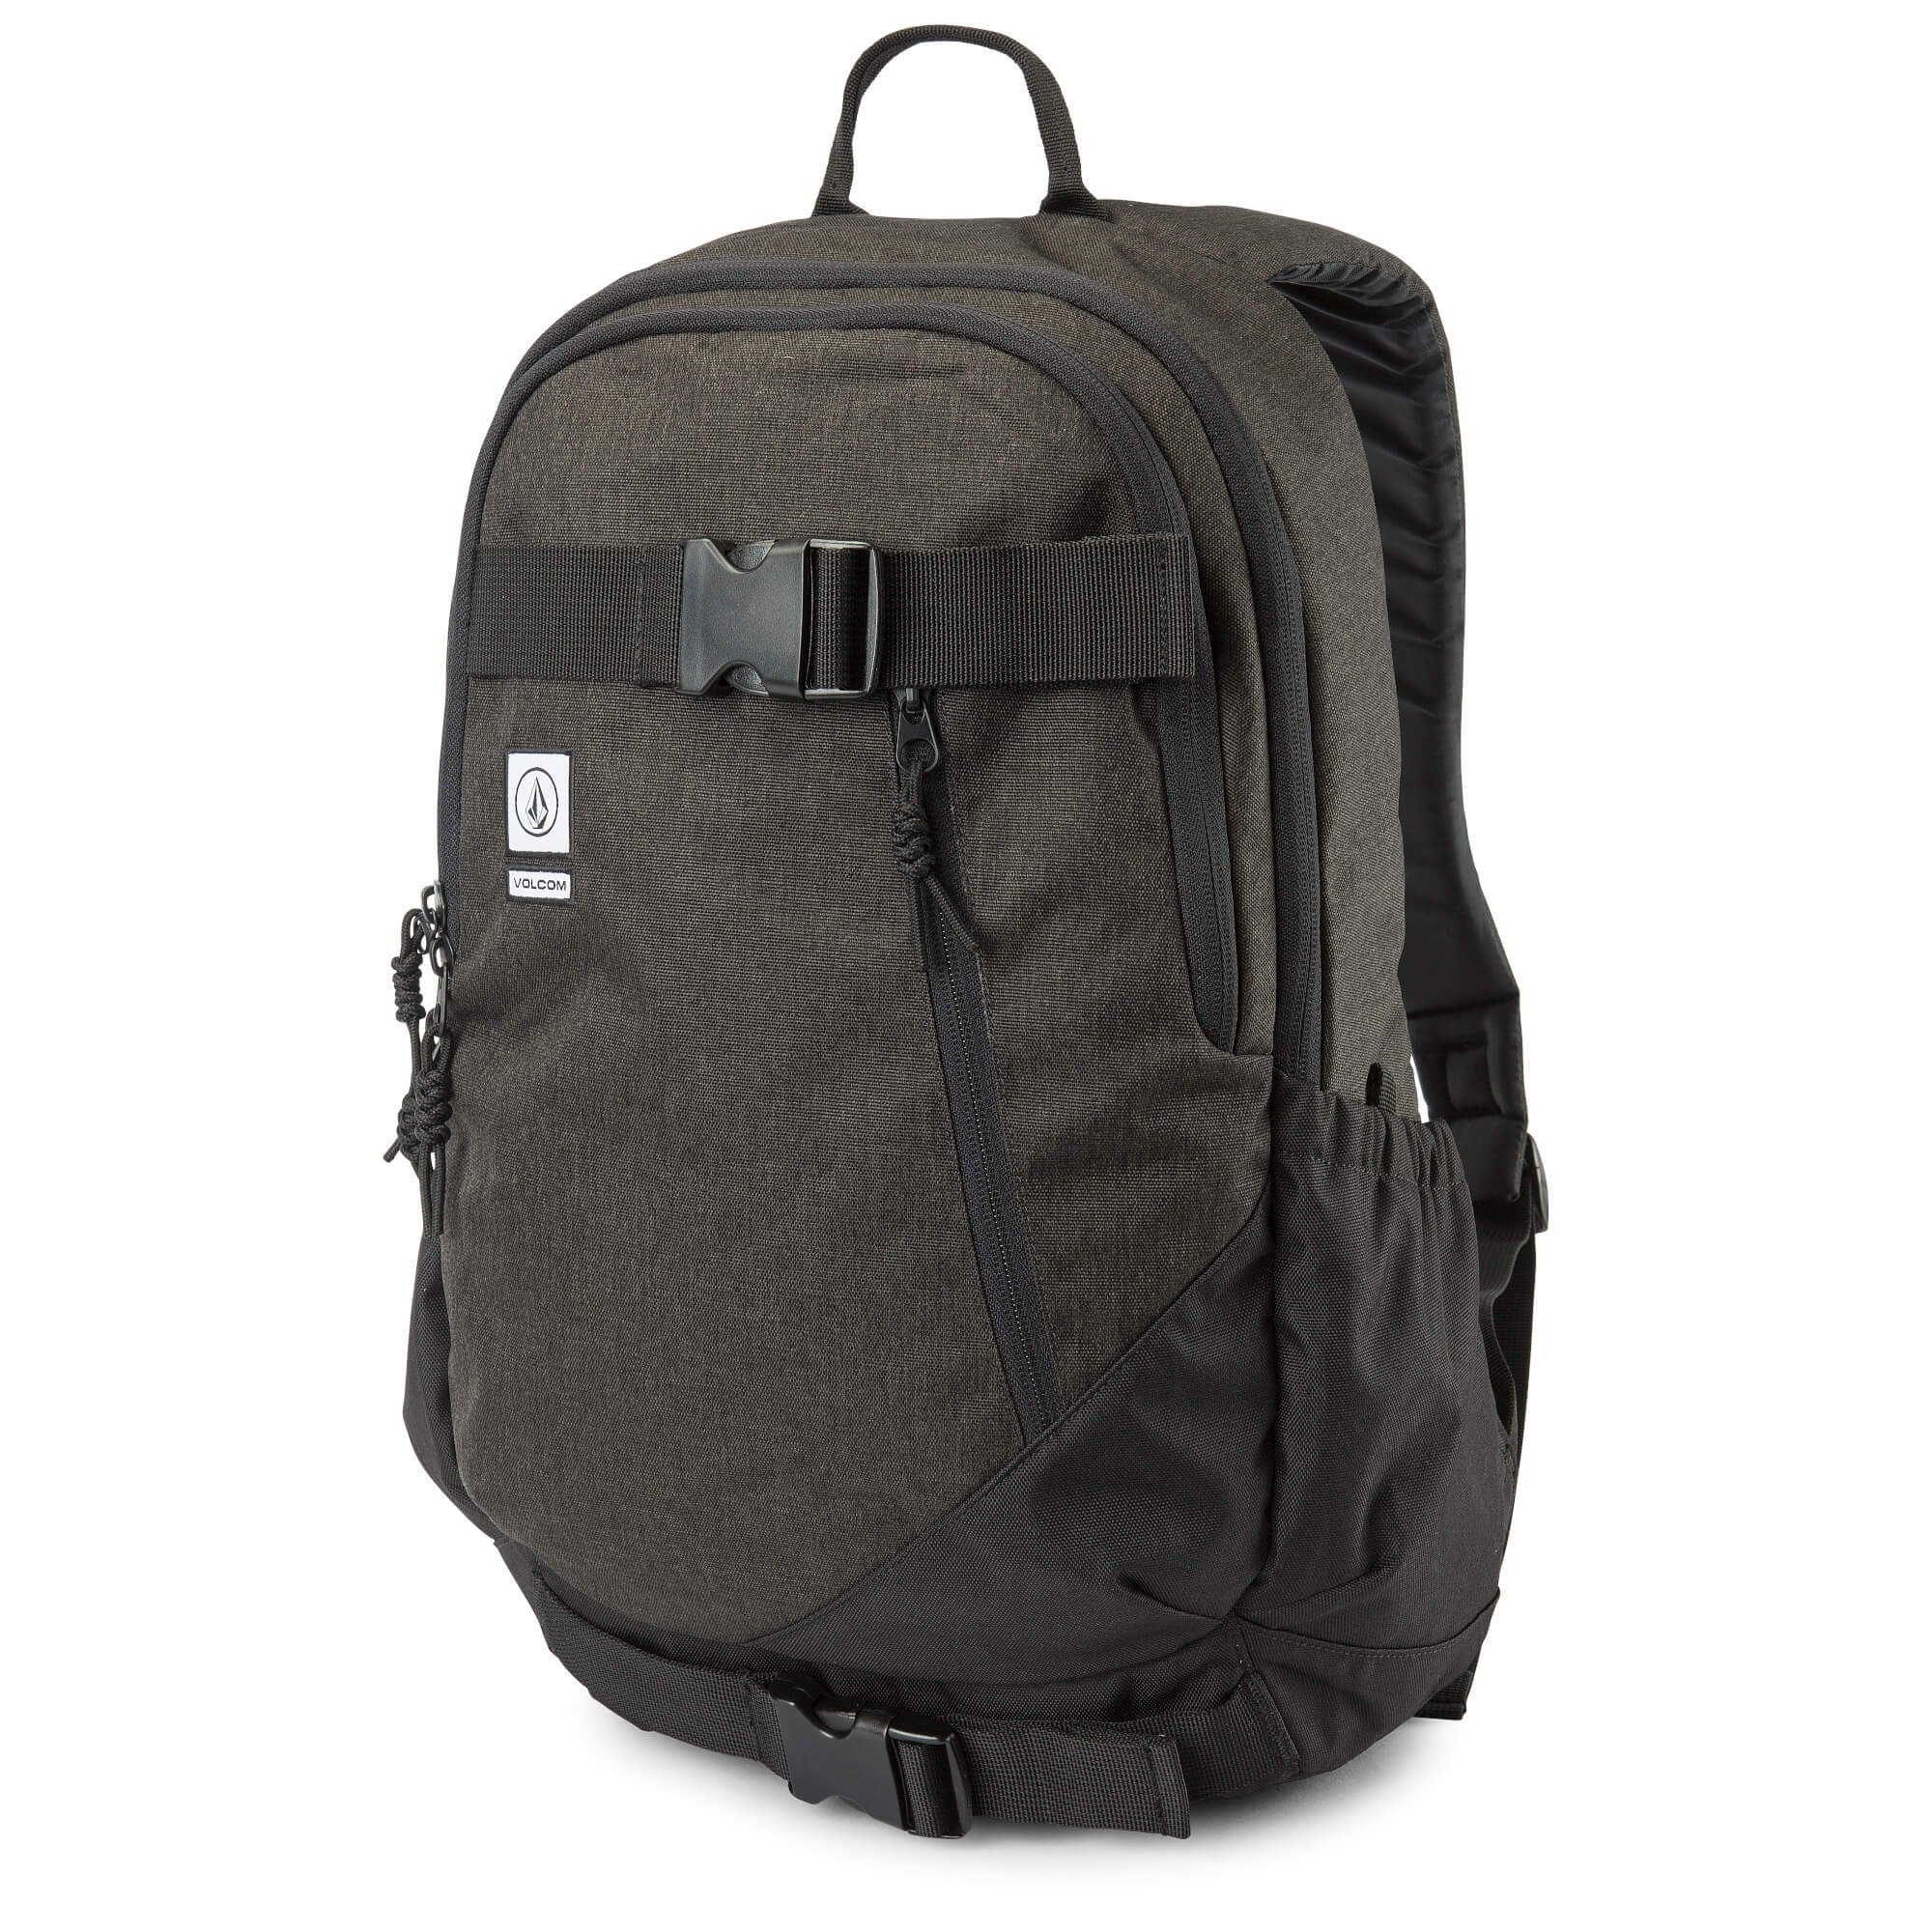 Volcom Men's Substrate Backpack, new black, One Size Fits All